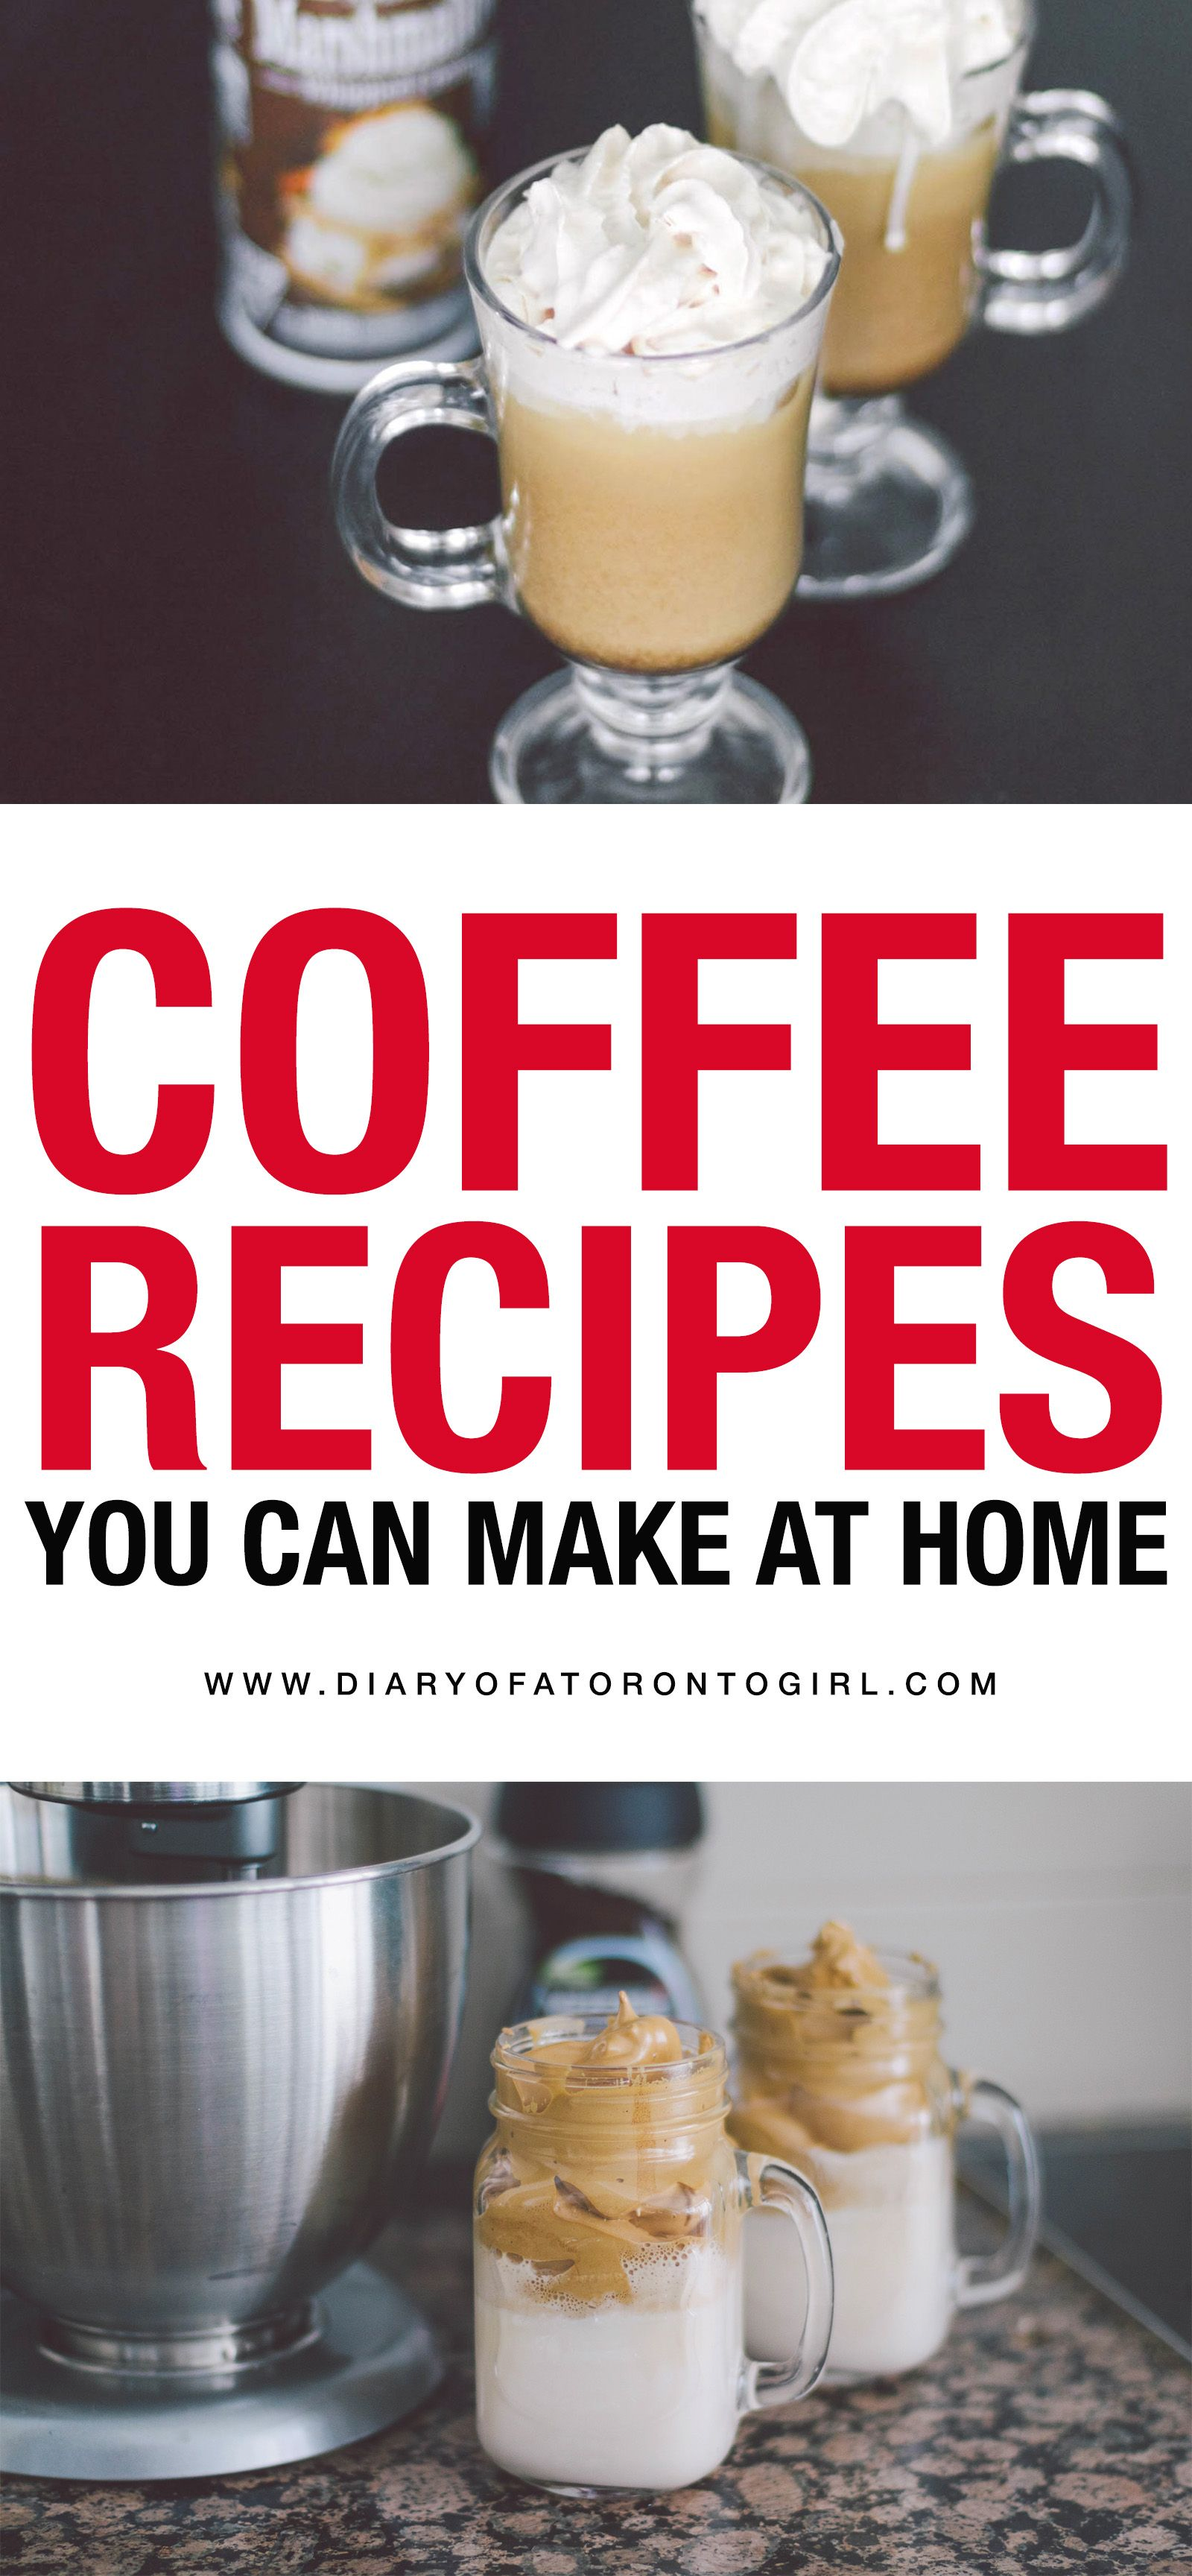 6 easy coffee drink recipes you can make at home in 2020